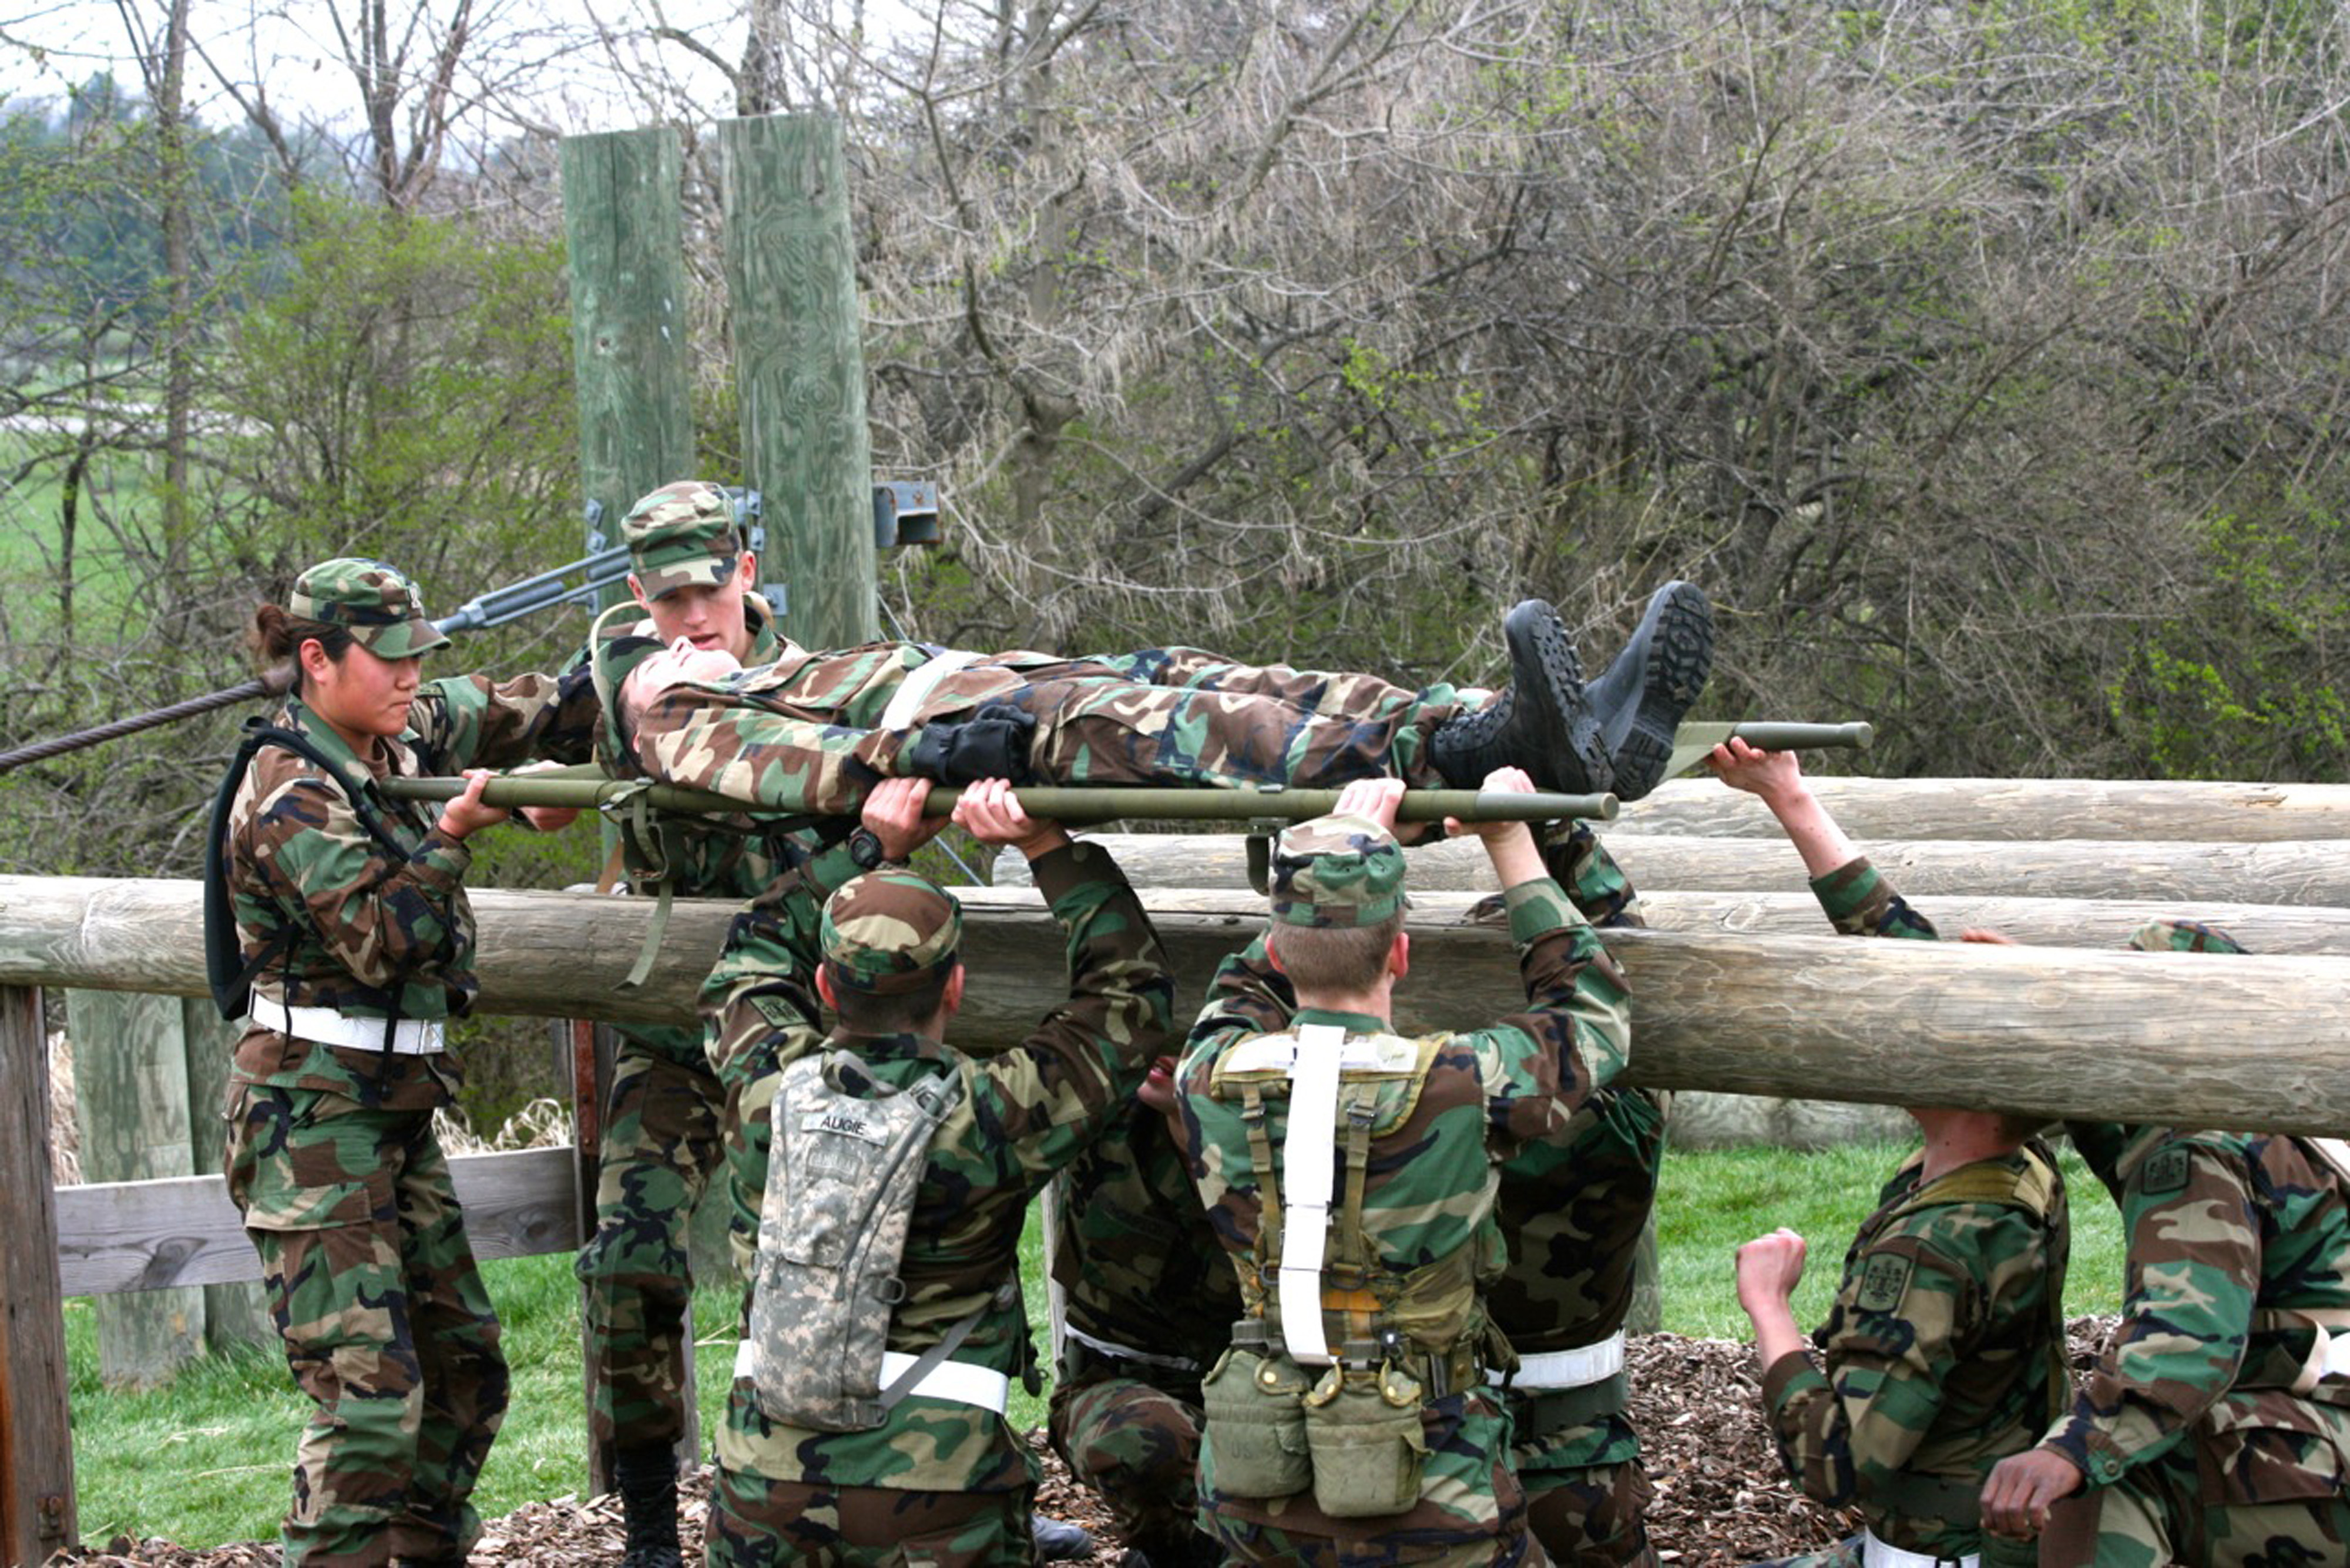 Members of the Virginia Tech Corps of Cadets navigating an obstacle in the Annual Squad Tactical Challenge in 2011